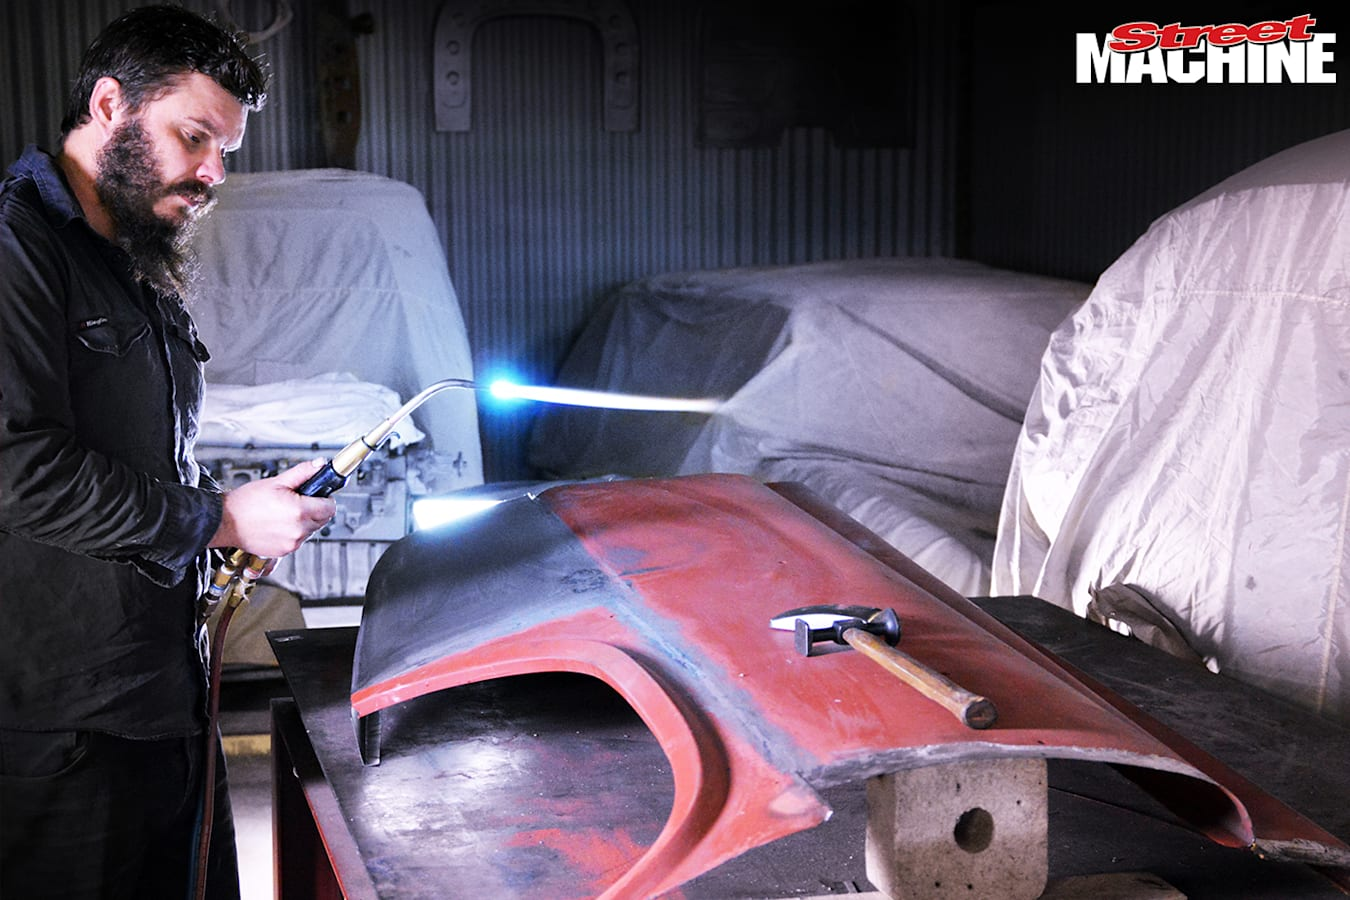 Heat shrinking metal how to